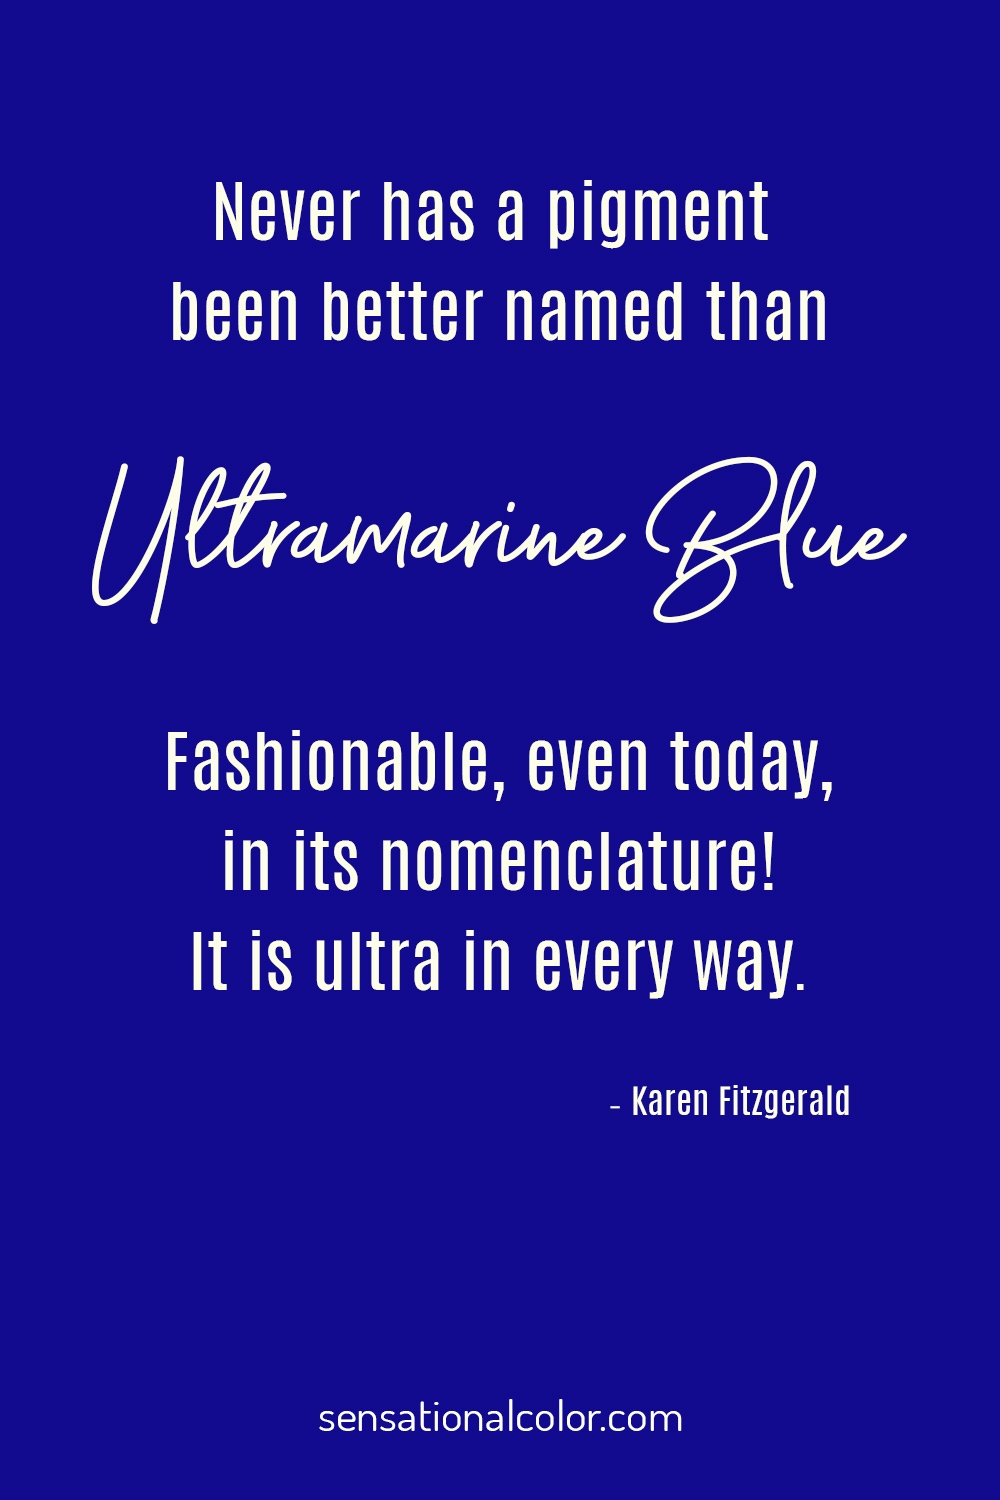 """Never has a pigment been better named than ultramarine blue. Fashionable, even today, in its nomenclature! It is ultra in every way."" - Karen Fitzgerald"